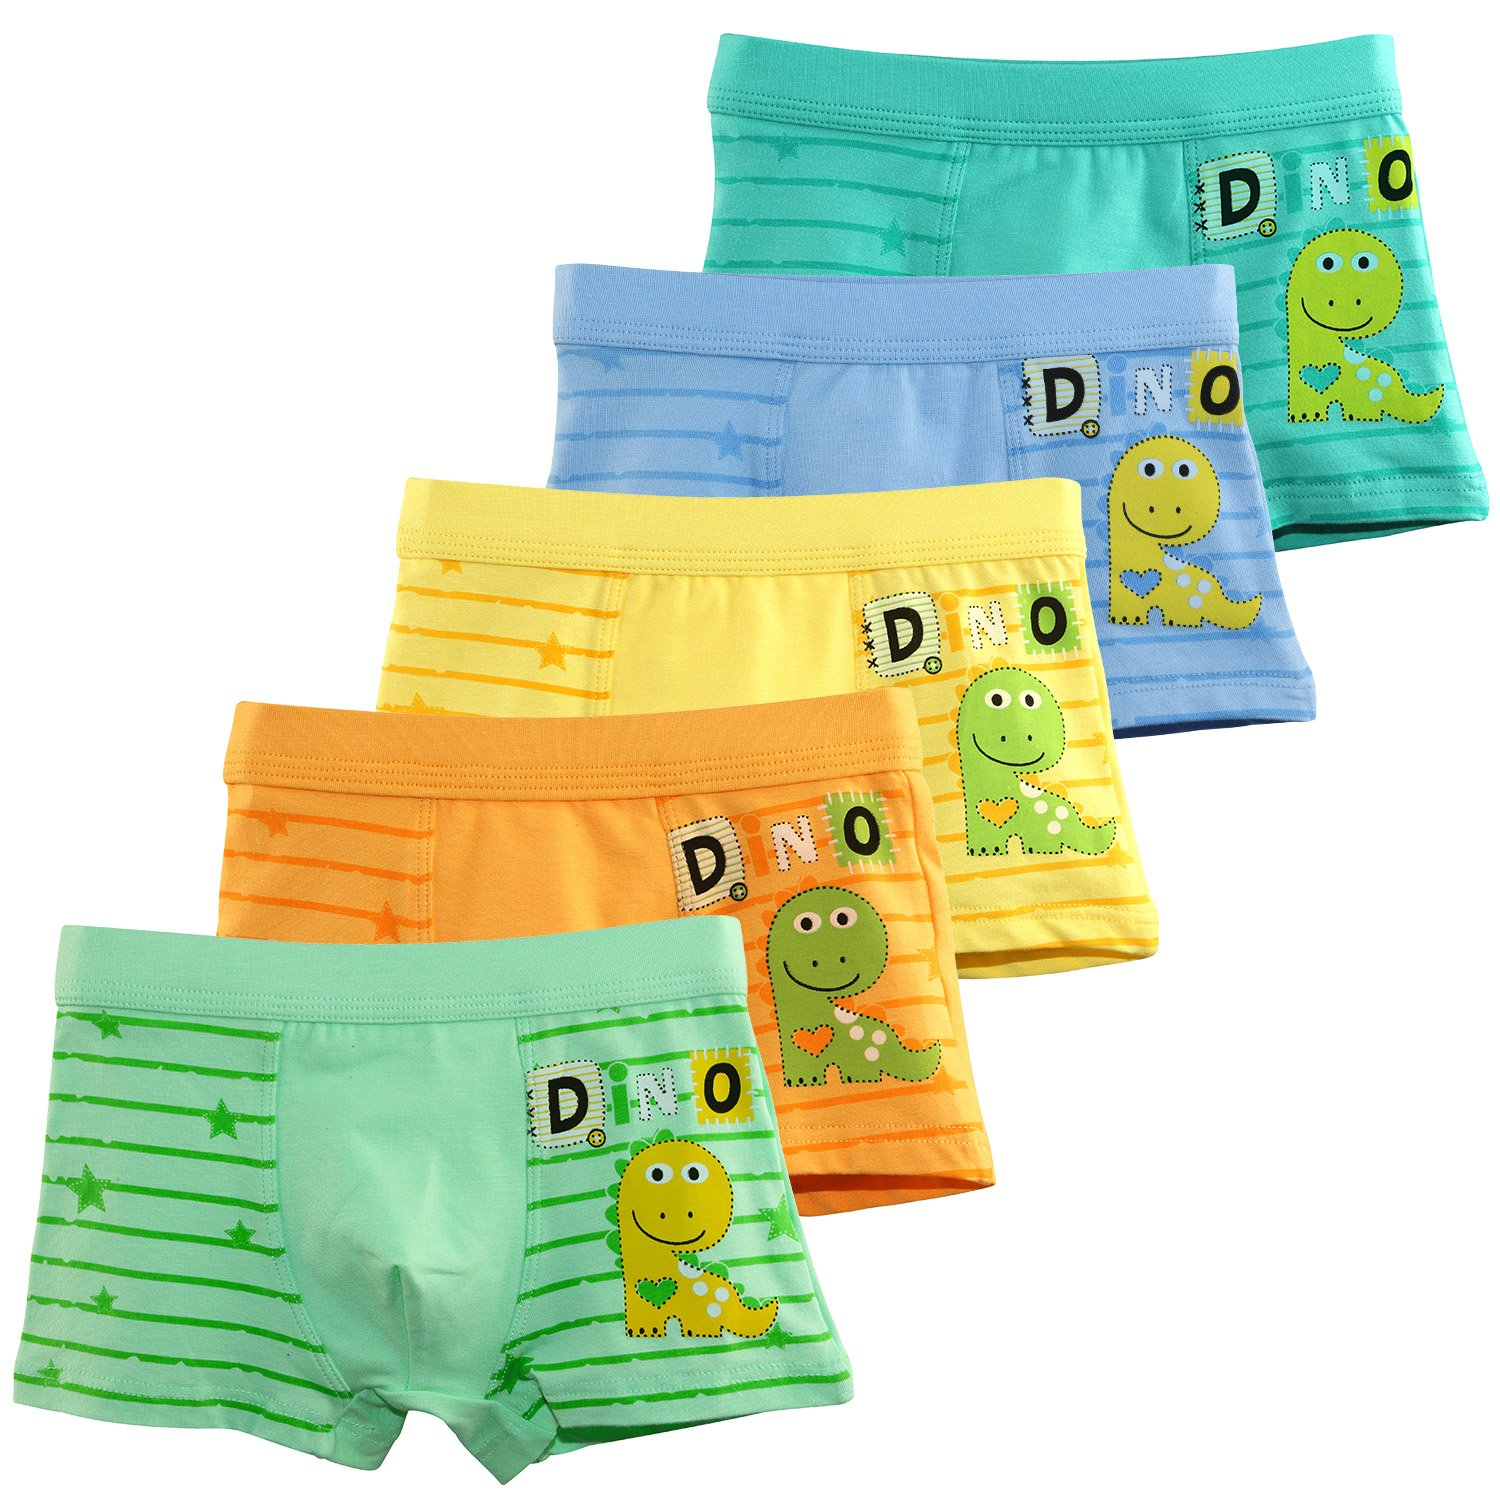 BOOPH Boys Underwear Dinosaur Boys'Boxer Briefs Little Toddler Cotton Underwear for Kids 2T-12T by BOOPH (Image #1)